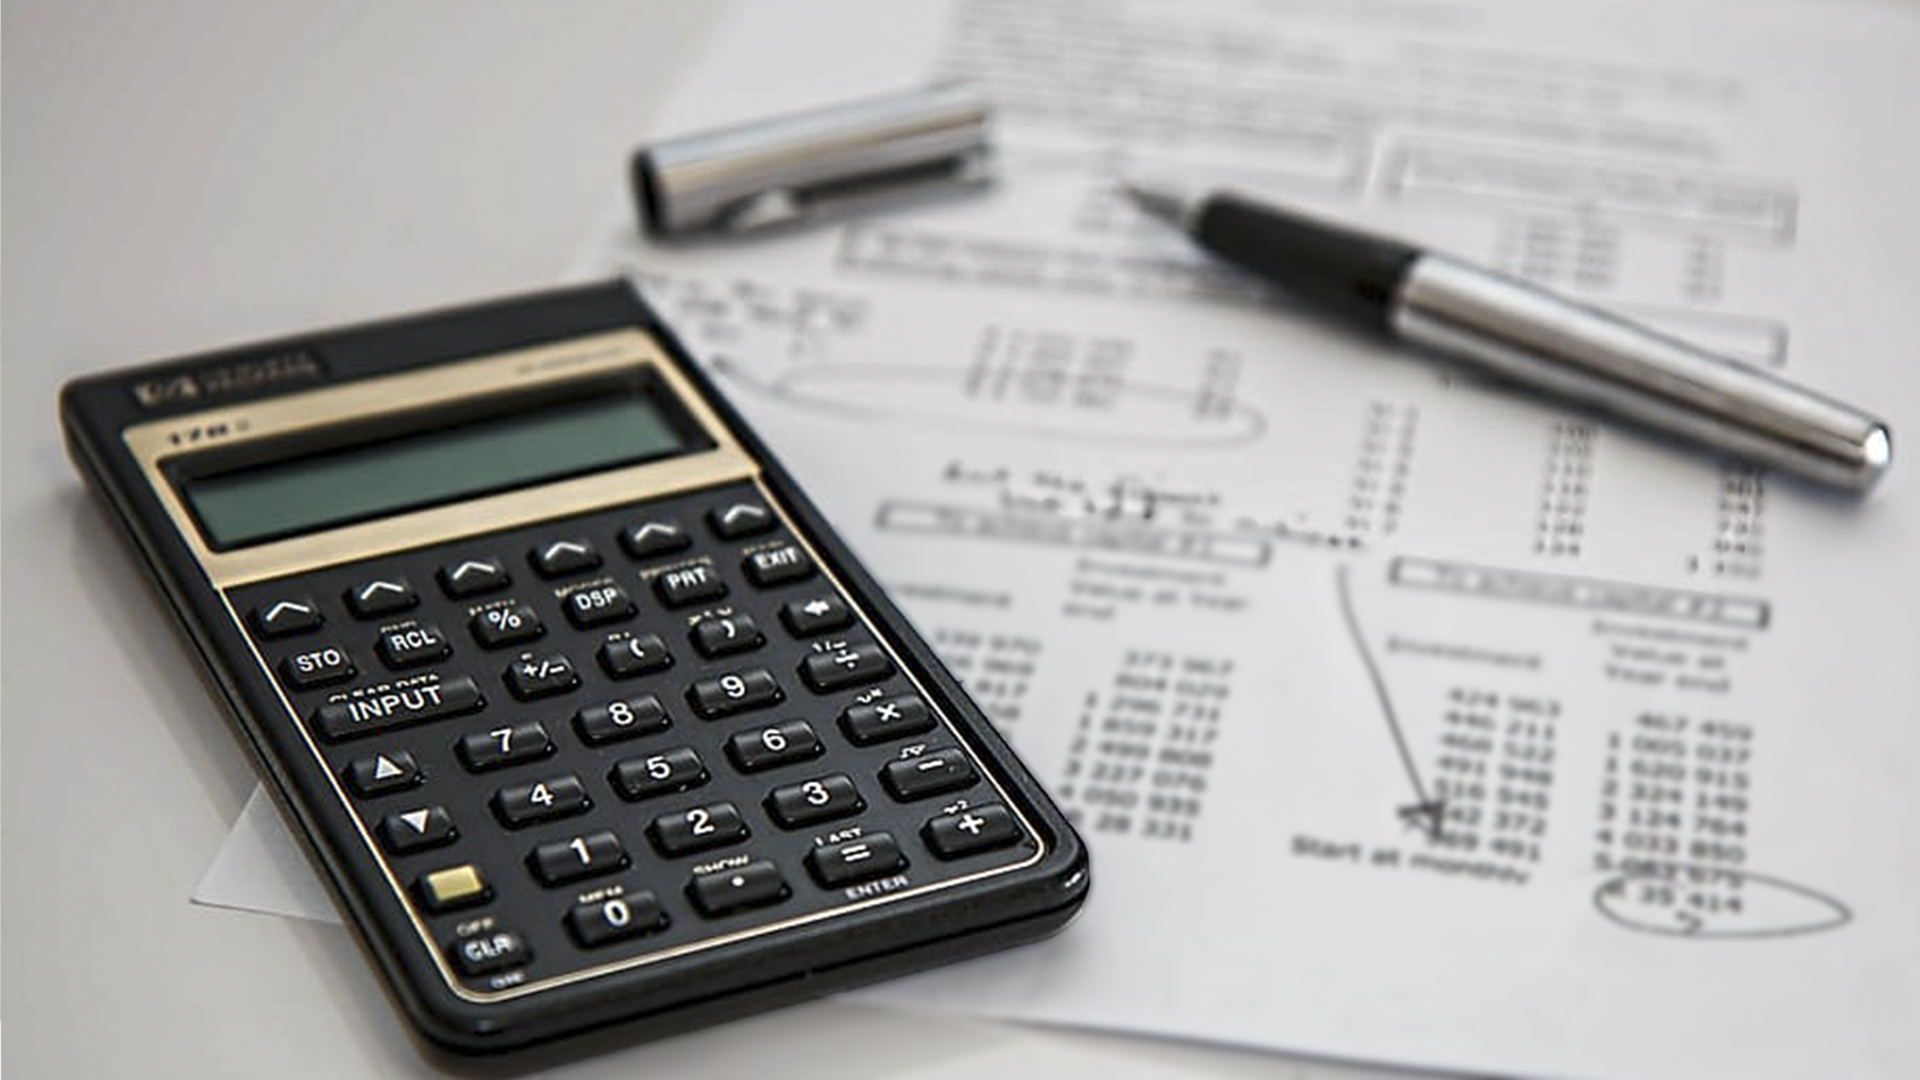 Electronically Signing Your Tax Returns